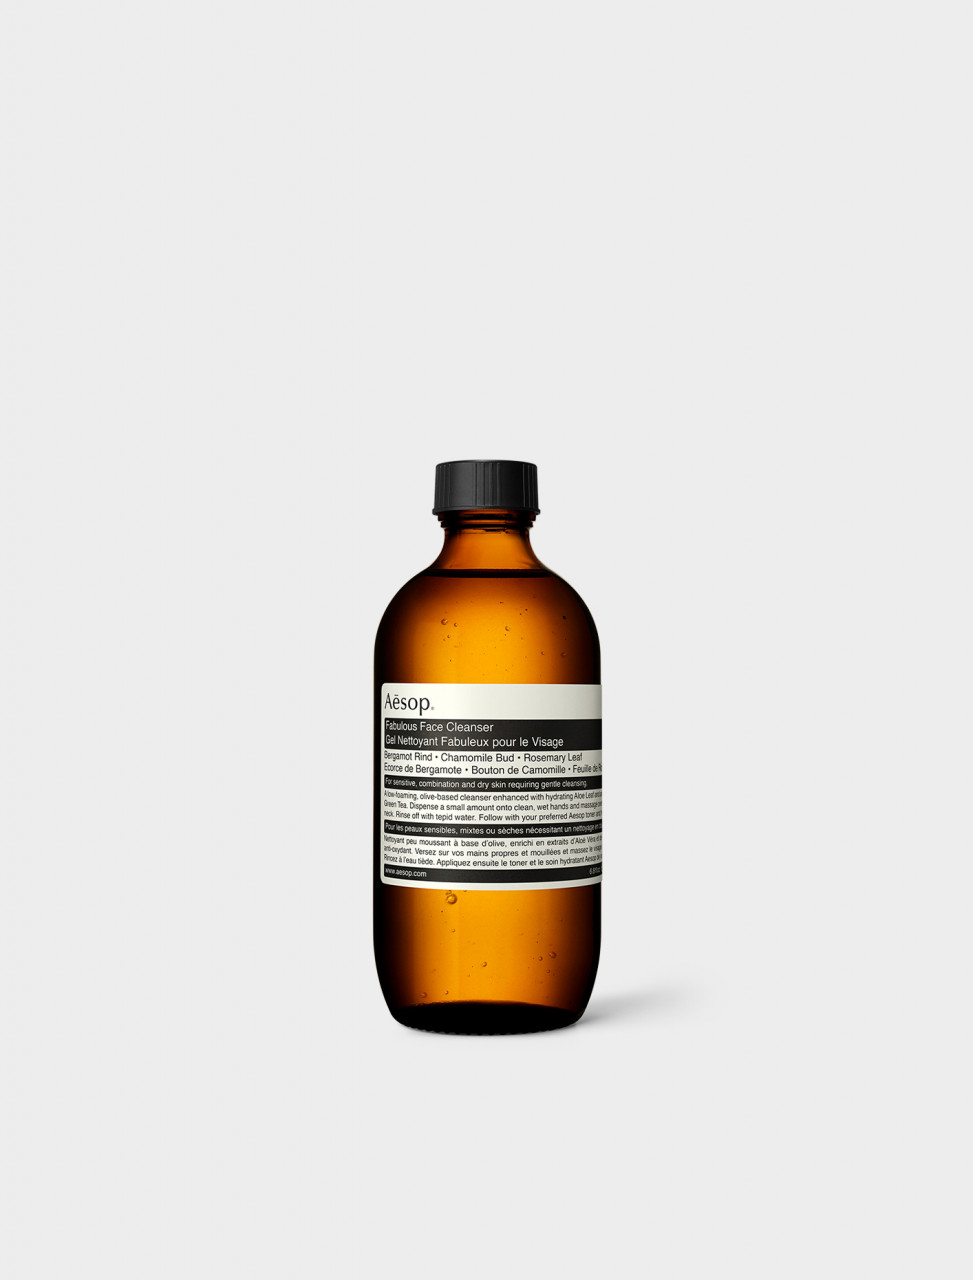 ASK13 Aesop Fabulous-Face Cleanser 200mL